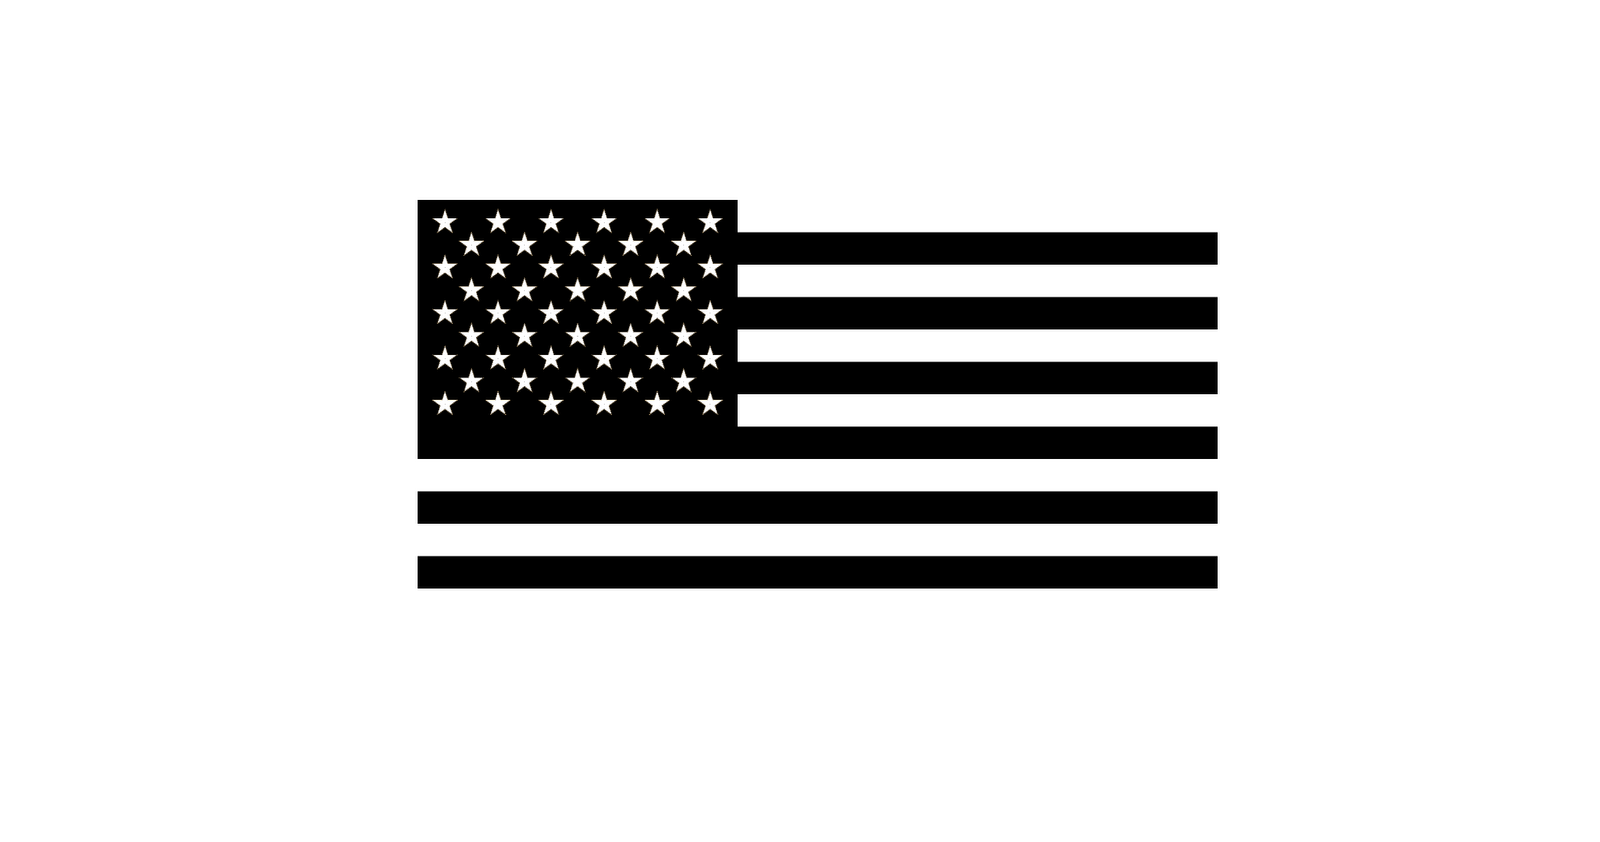 flag american clipart patch meaning dispatcher dog usa gifts line clipground spangled rude leather pmb chaparral combs mc rd thin